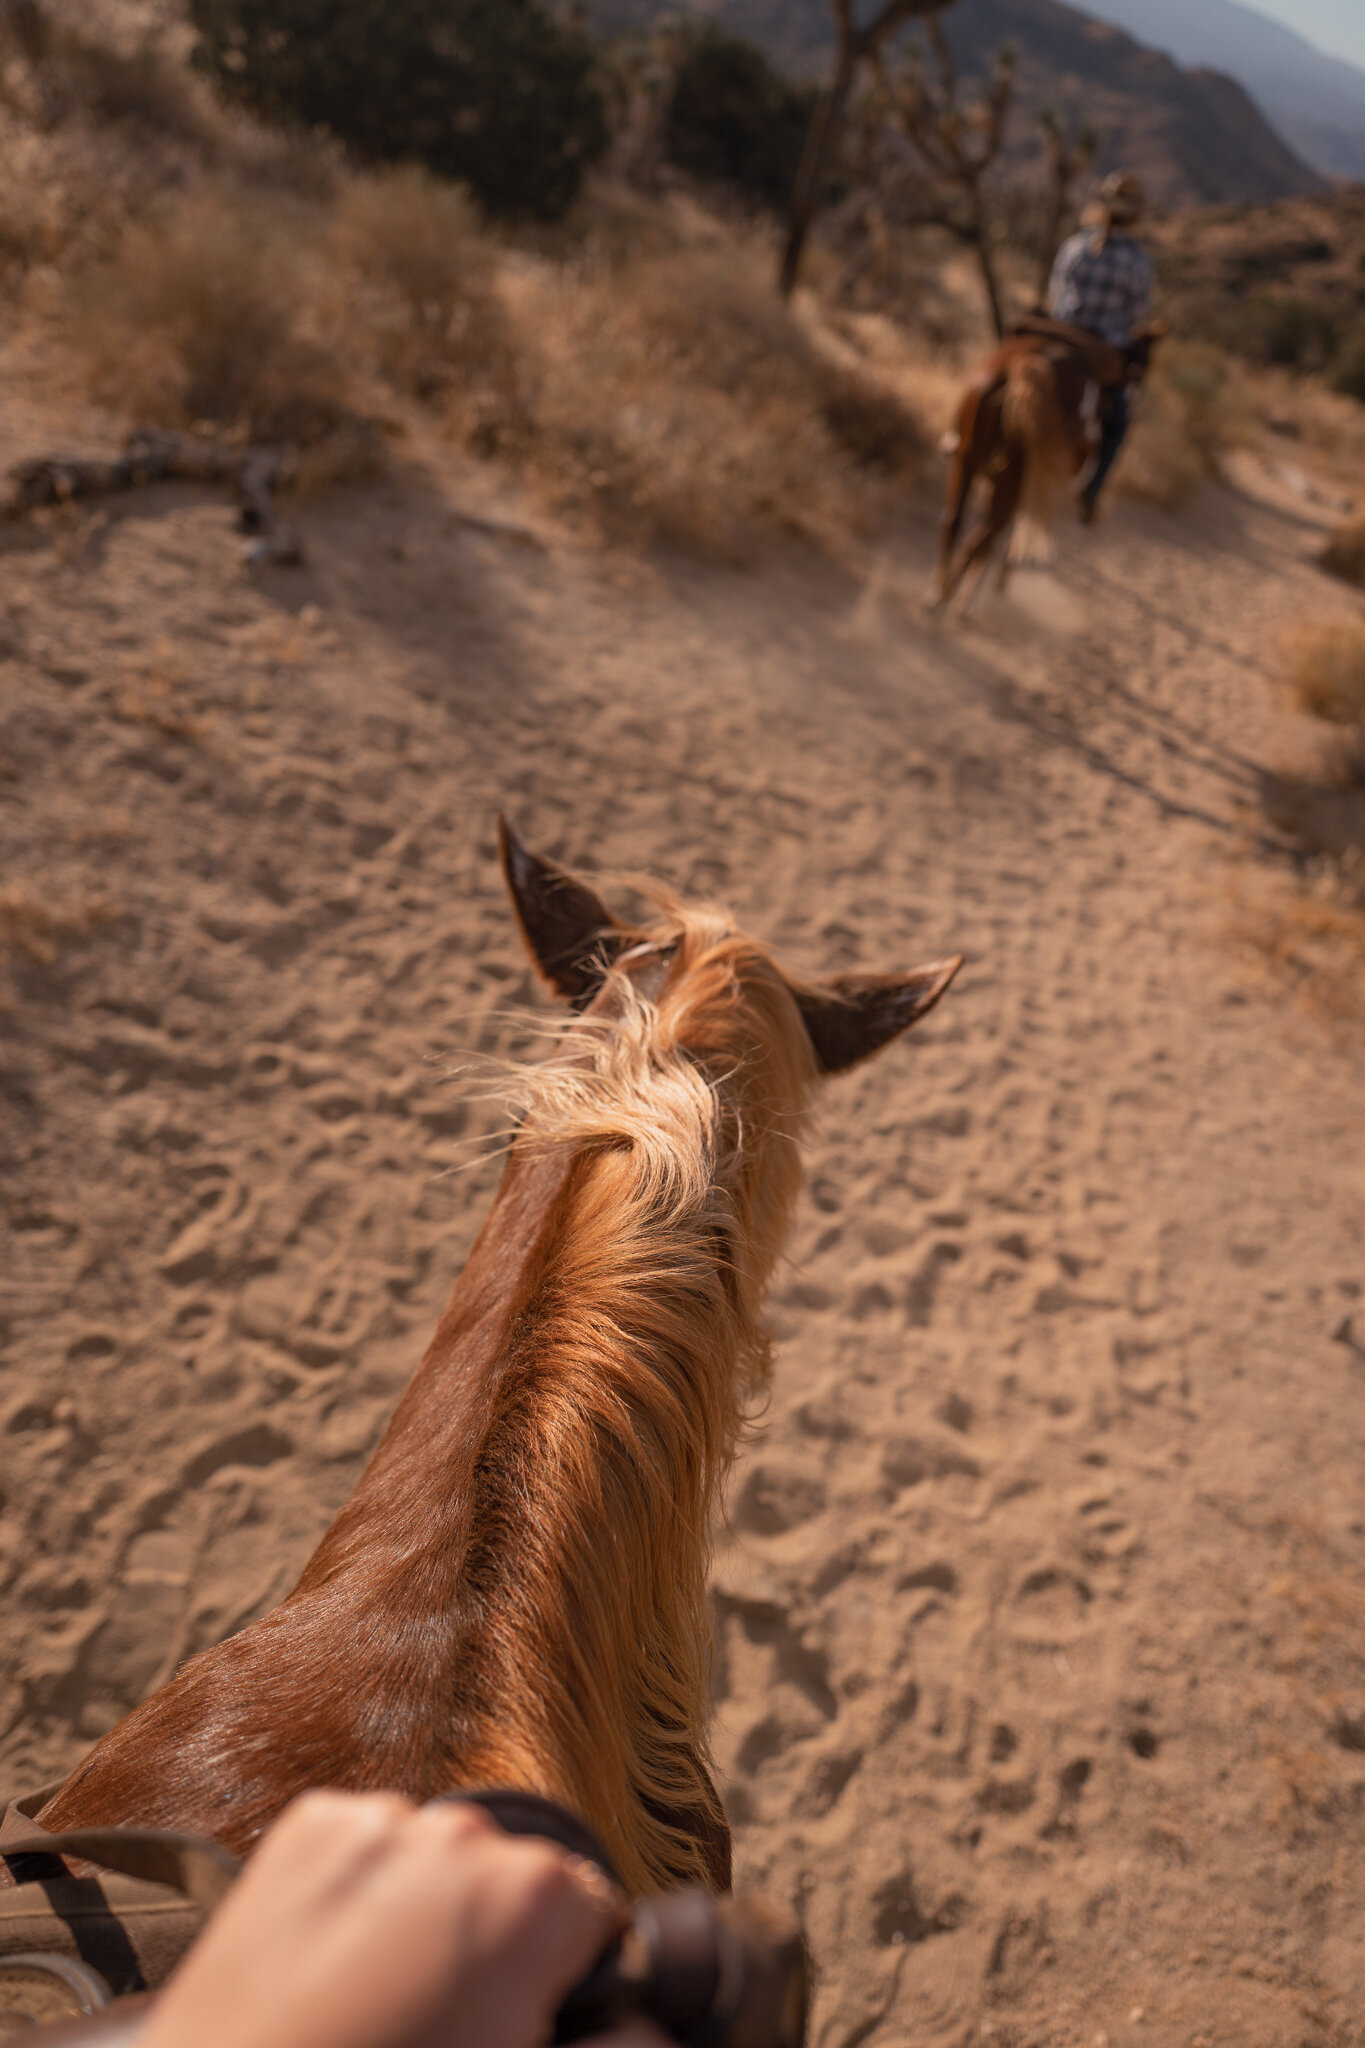 horseback riding in Joshua tree knob hill ranch Joshua tree guide